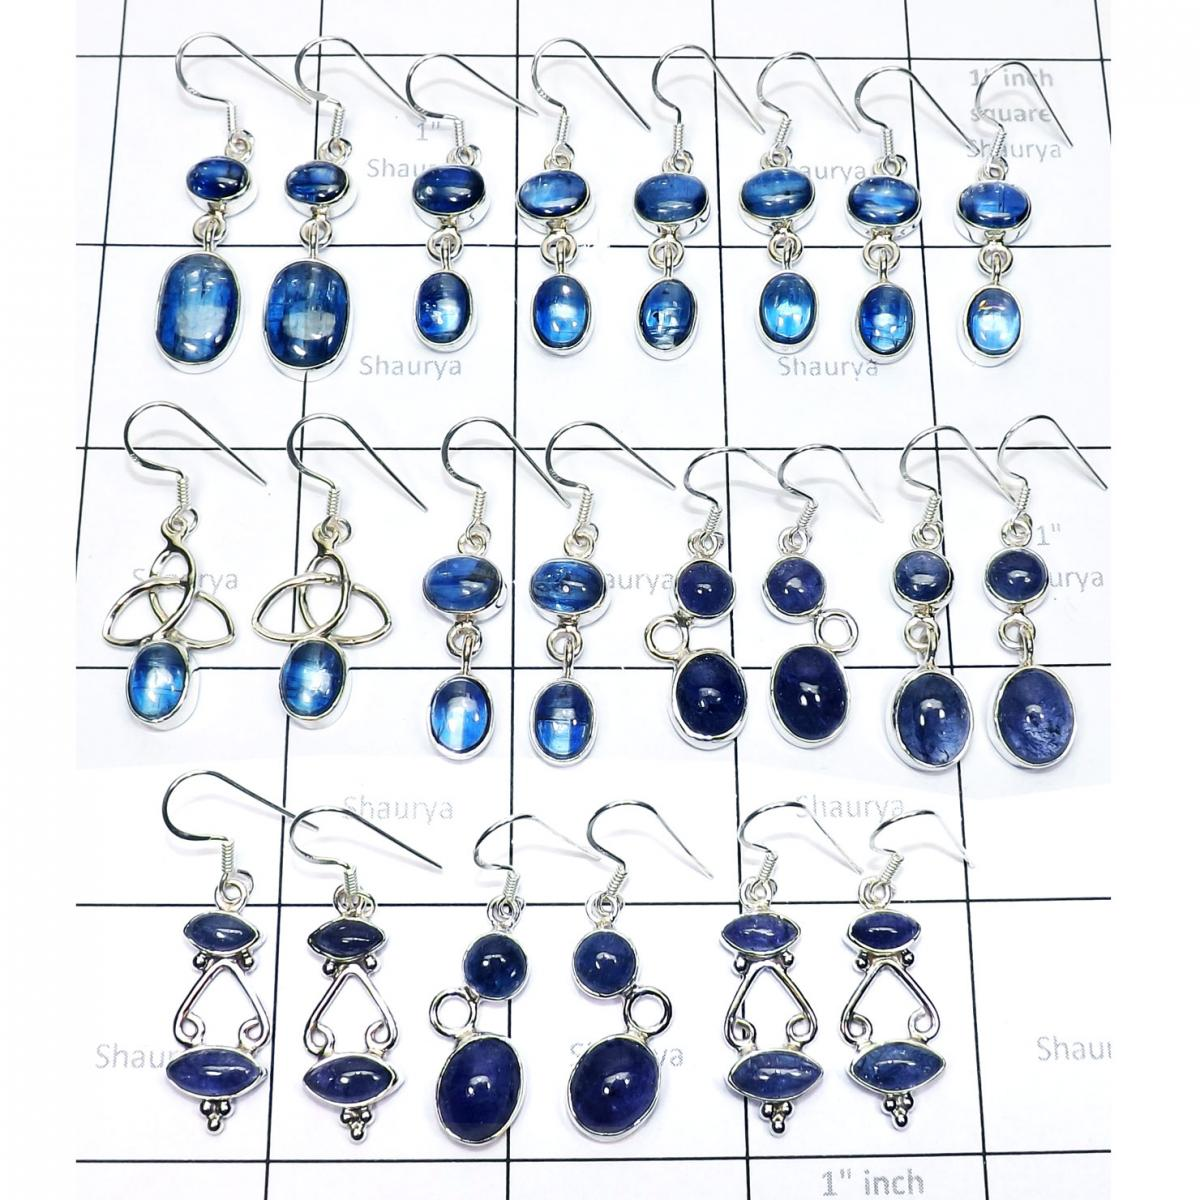 11 Pairs Kyanite & Tanzanite cab O - WSL993- Assorted Earrings wholesale lots with 925 sterling silve